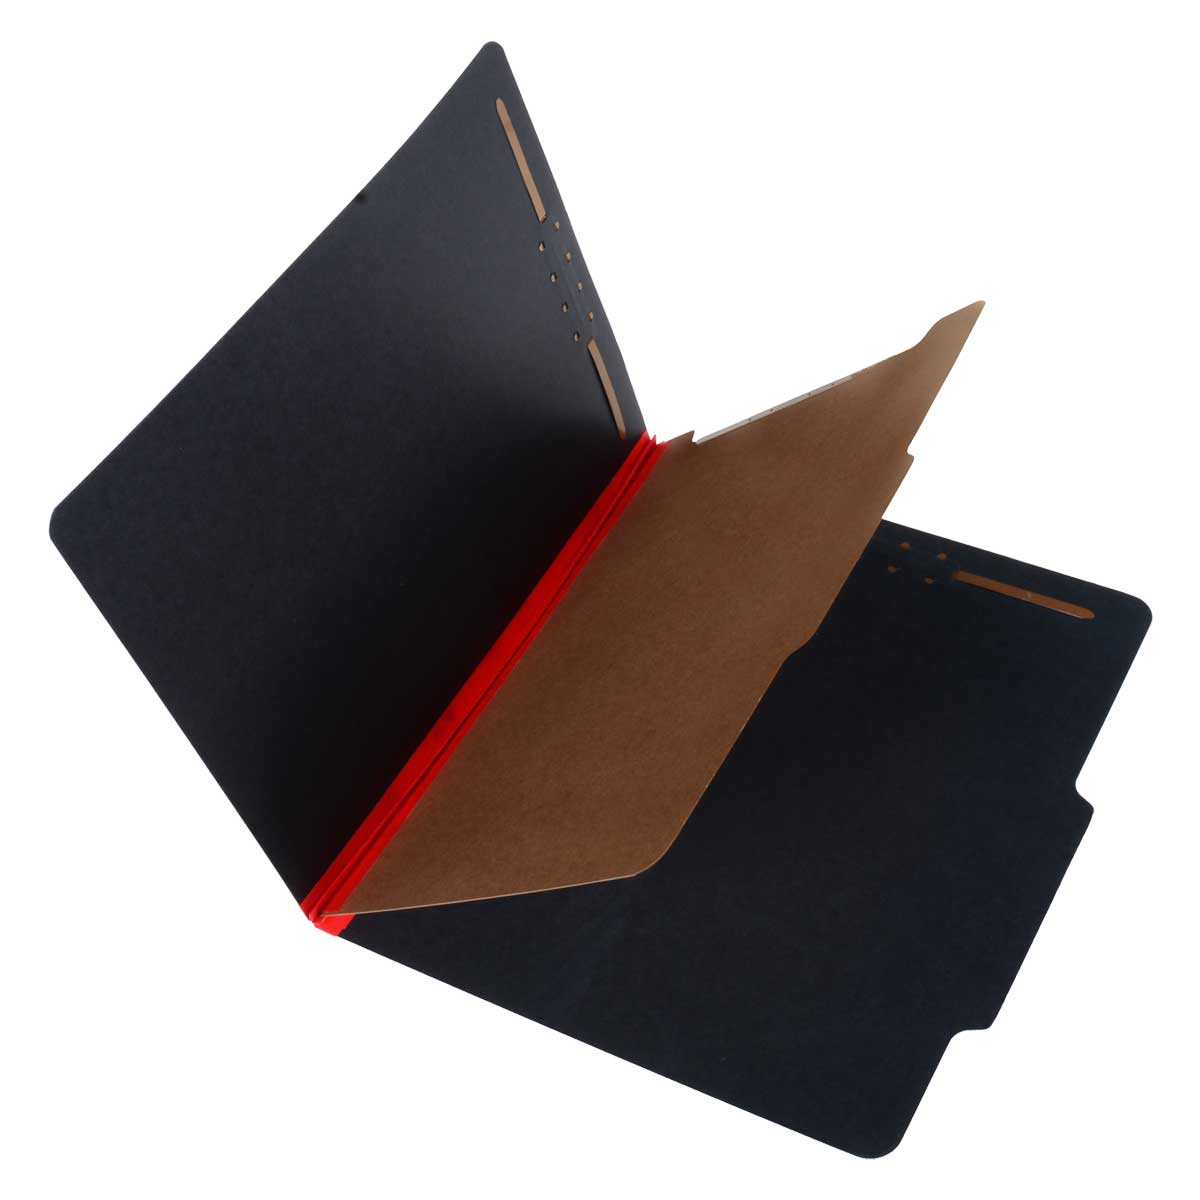 S-62611 - SJ Paper S62611 Match 25 Pt. Fusion Black Pressboard Classification Folders, 2/5 Cut ROC Top Tab, Letter Size, 1 Divider, Red tyvek (Box of 20)